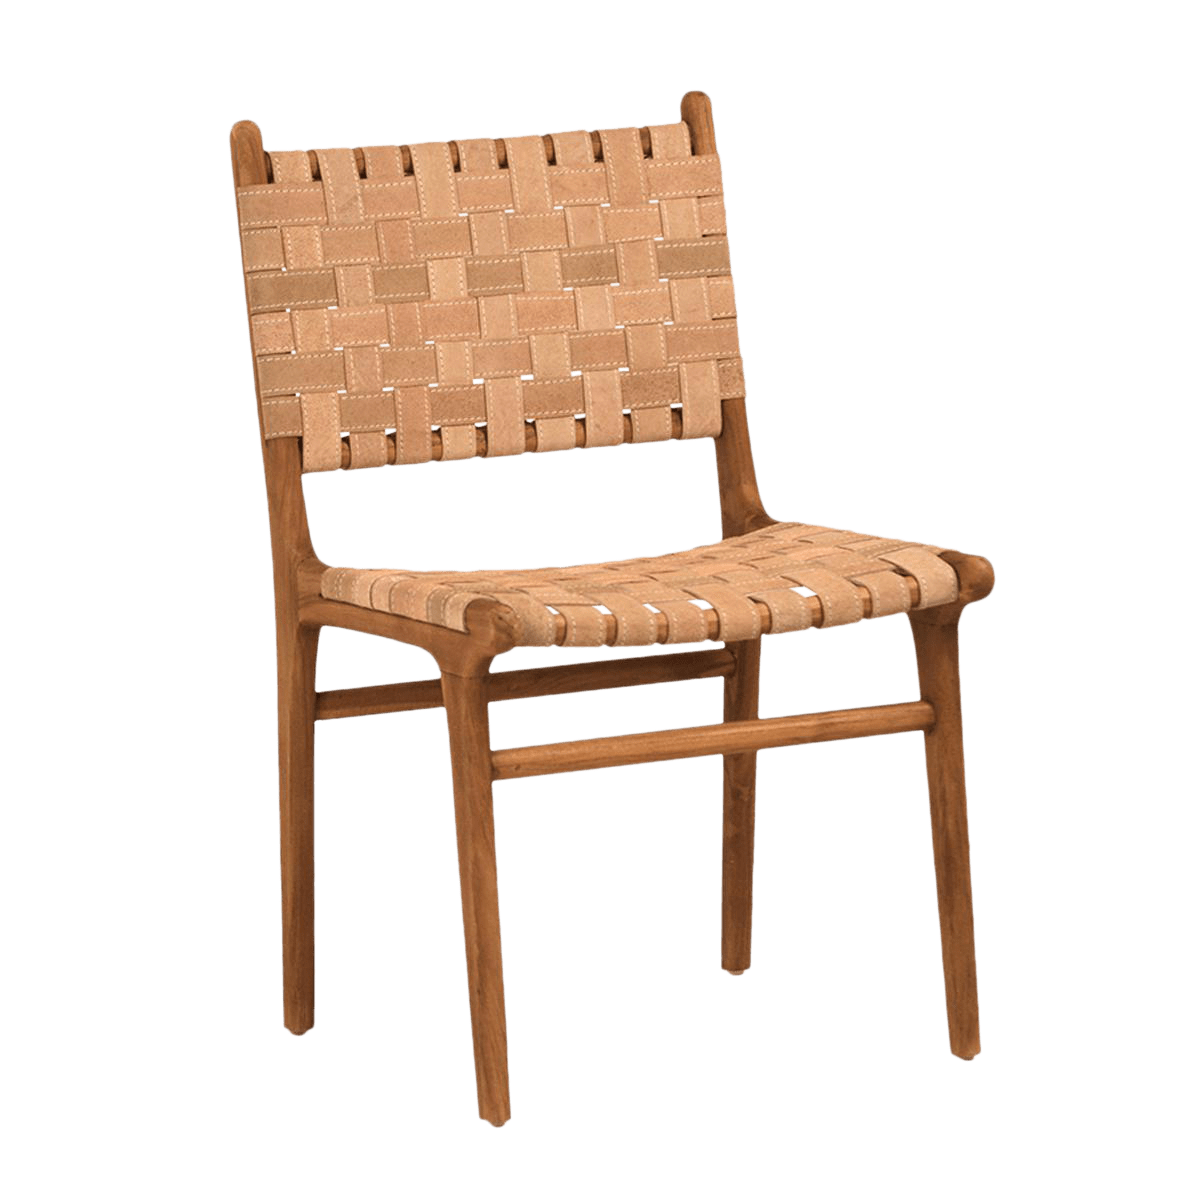 Leather Woven Chair Woven Leather Dining Chair Chairish